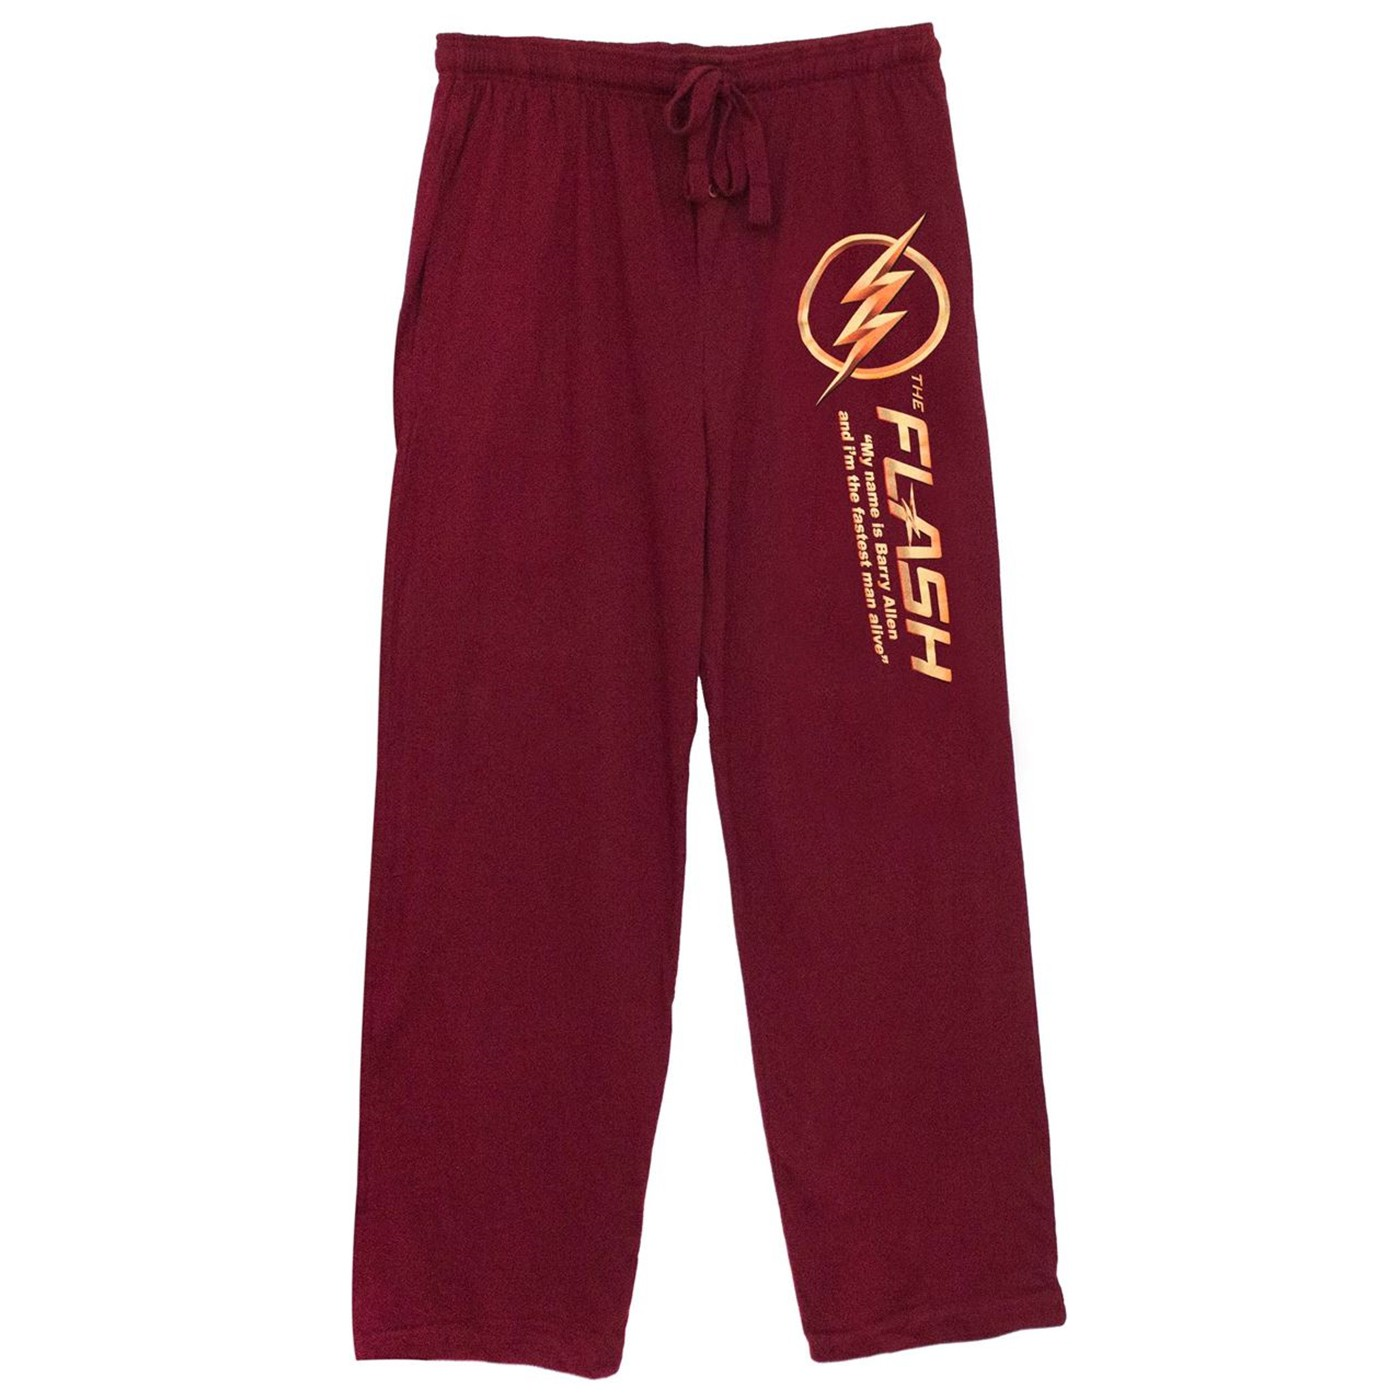 The Flash Barry Allen Unisex Sleep Pants